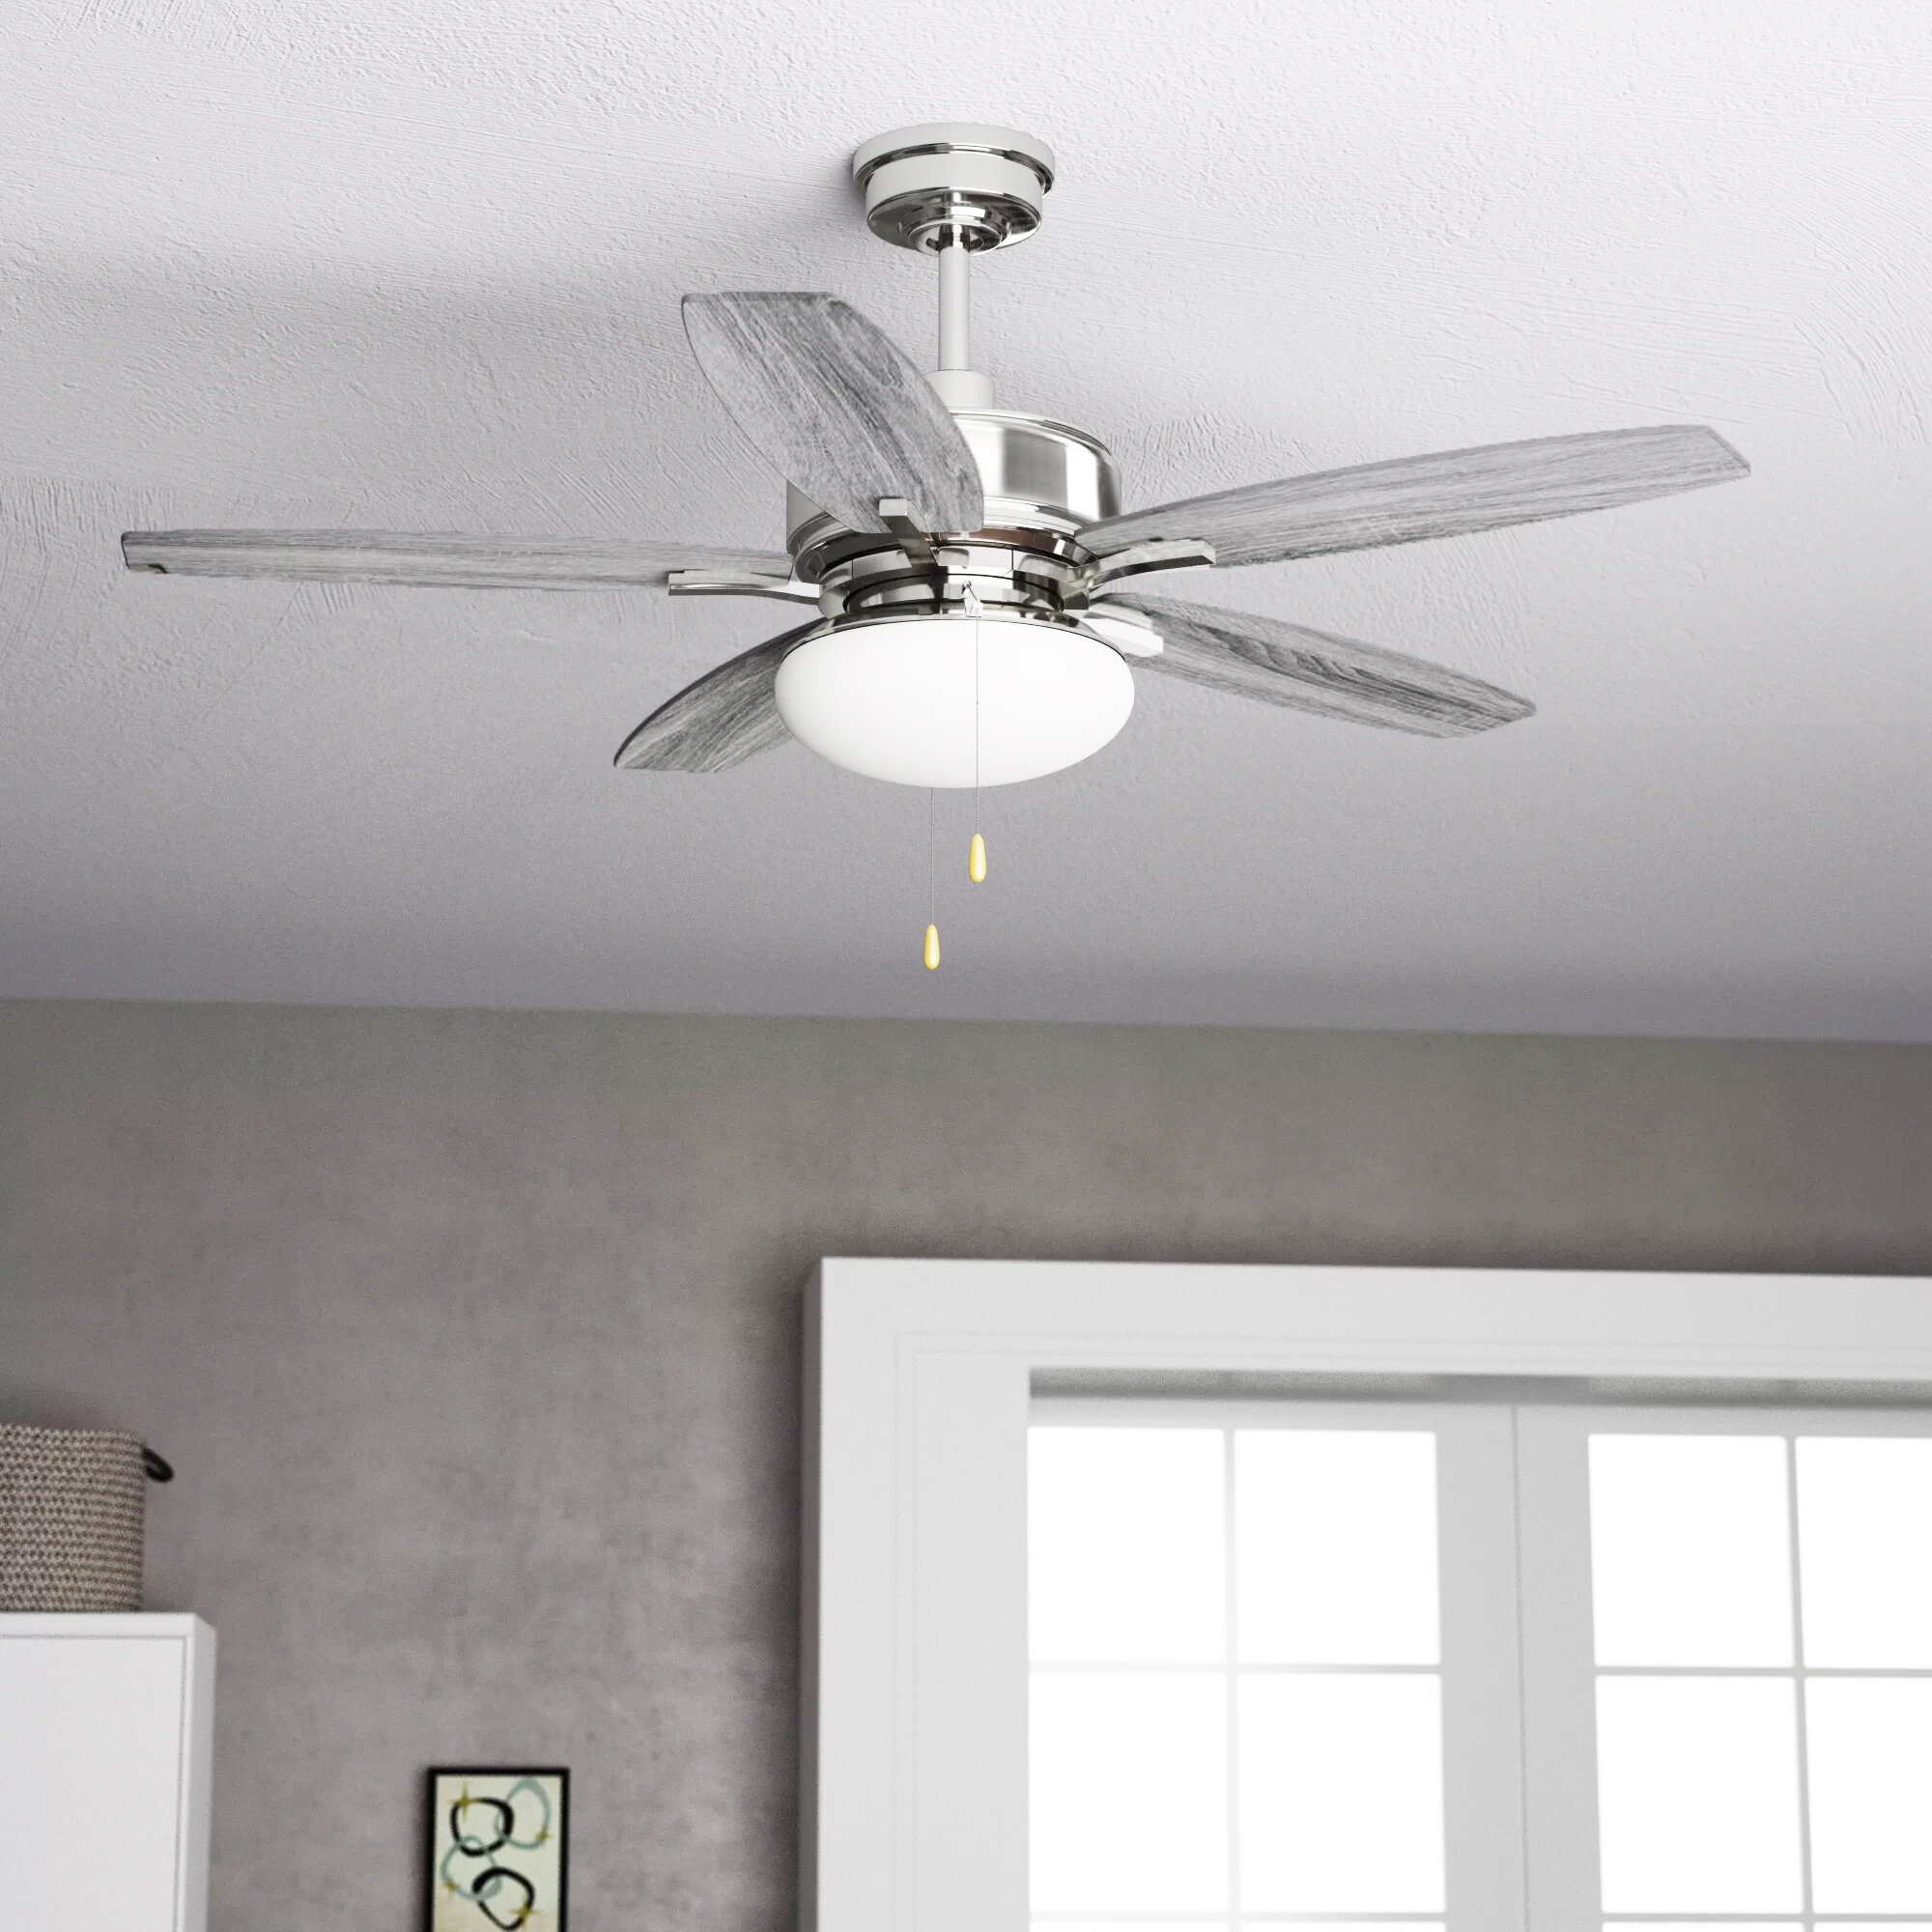 Red Barrel Studio 52 Segars 5 Blade Standard Ceiling Fan With Light Kit Included Reviews Wayfair